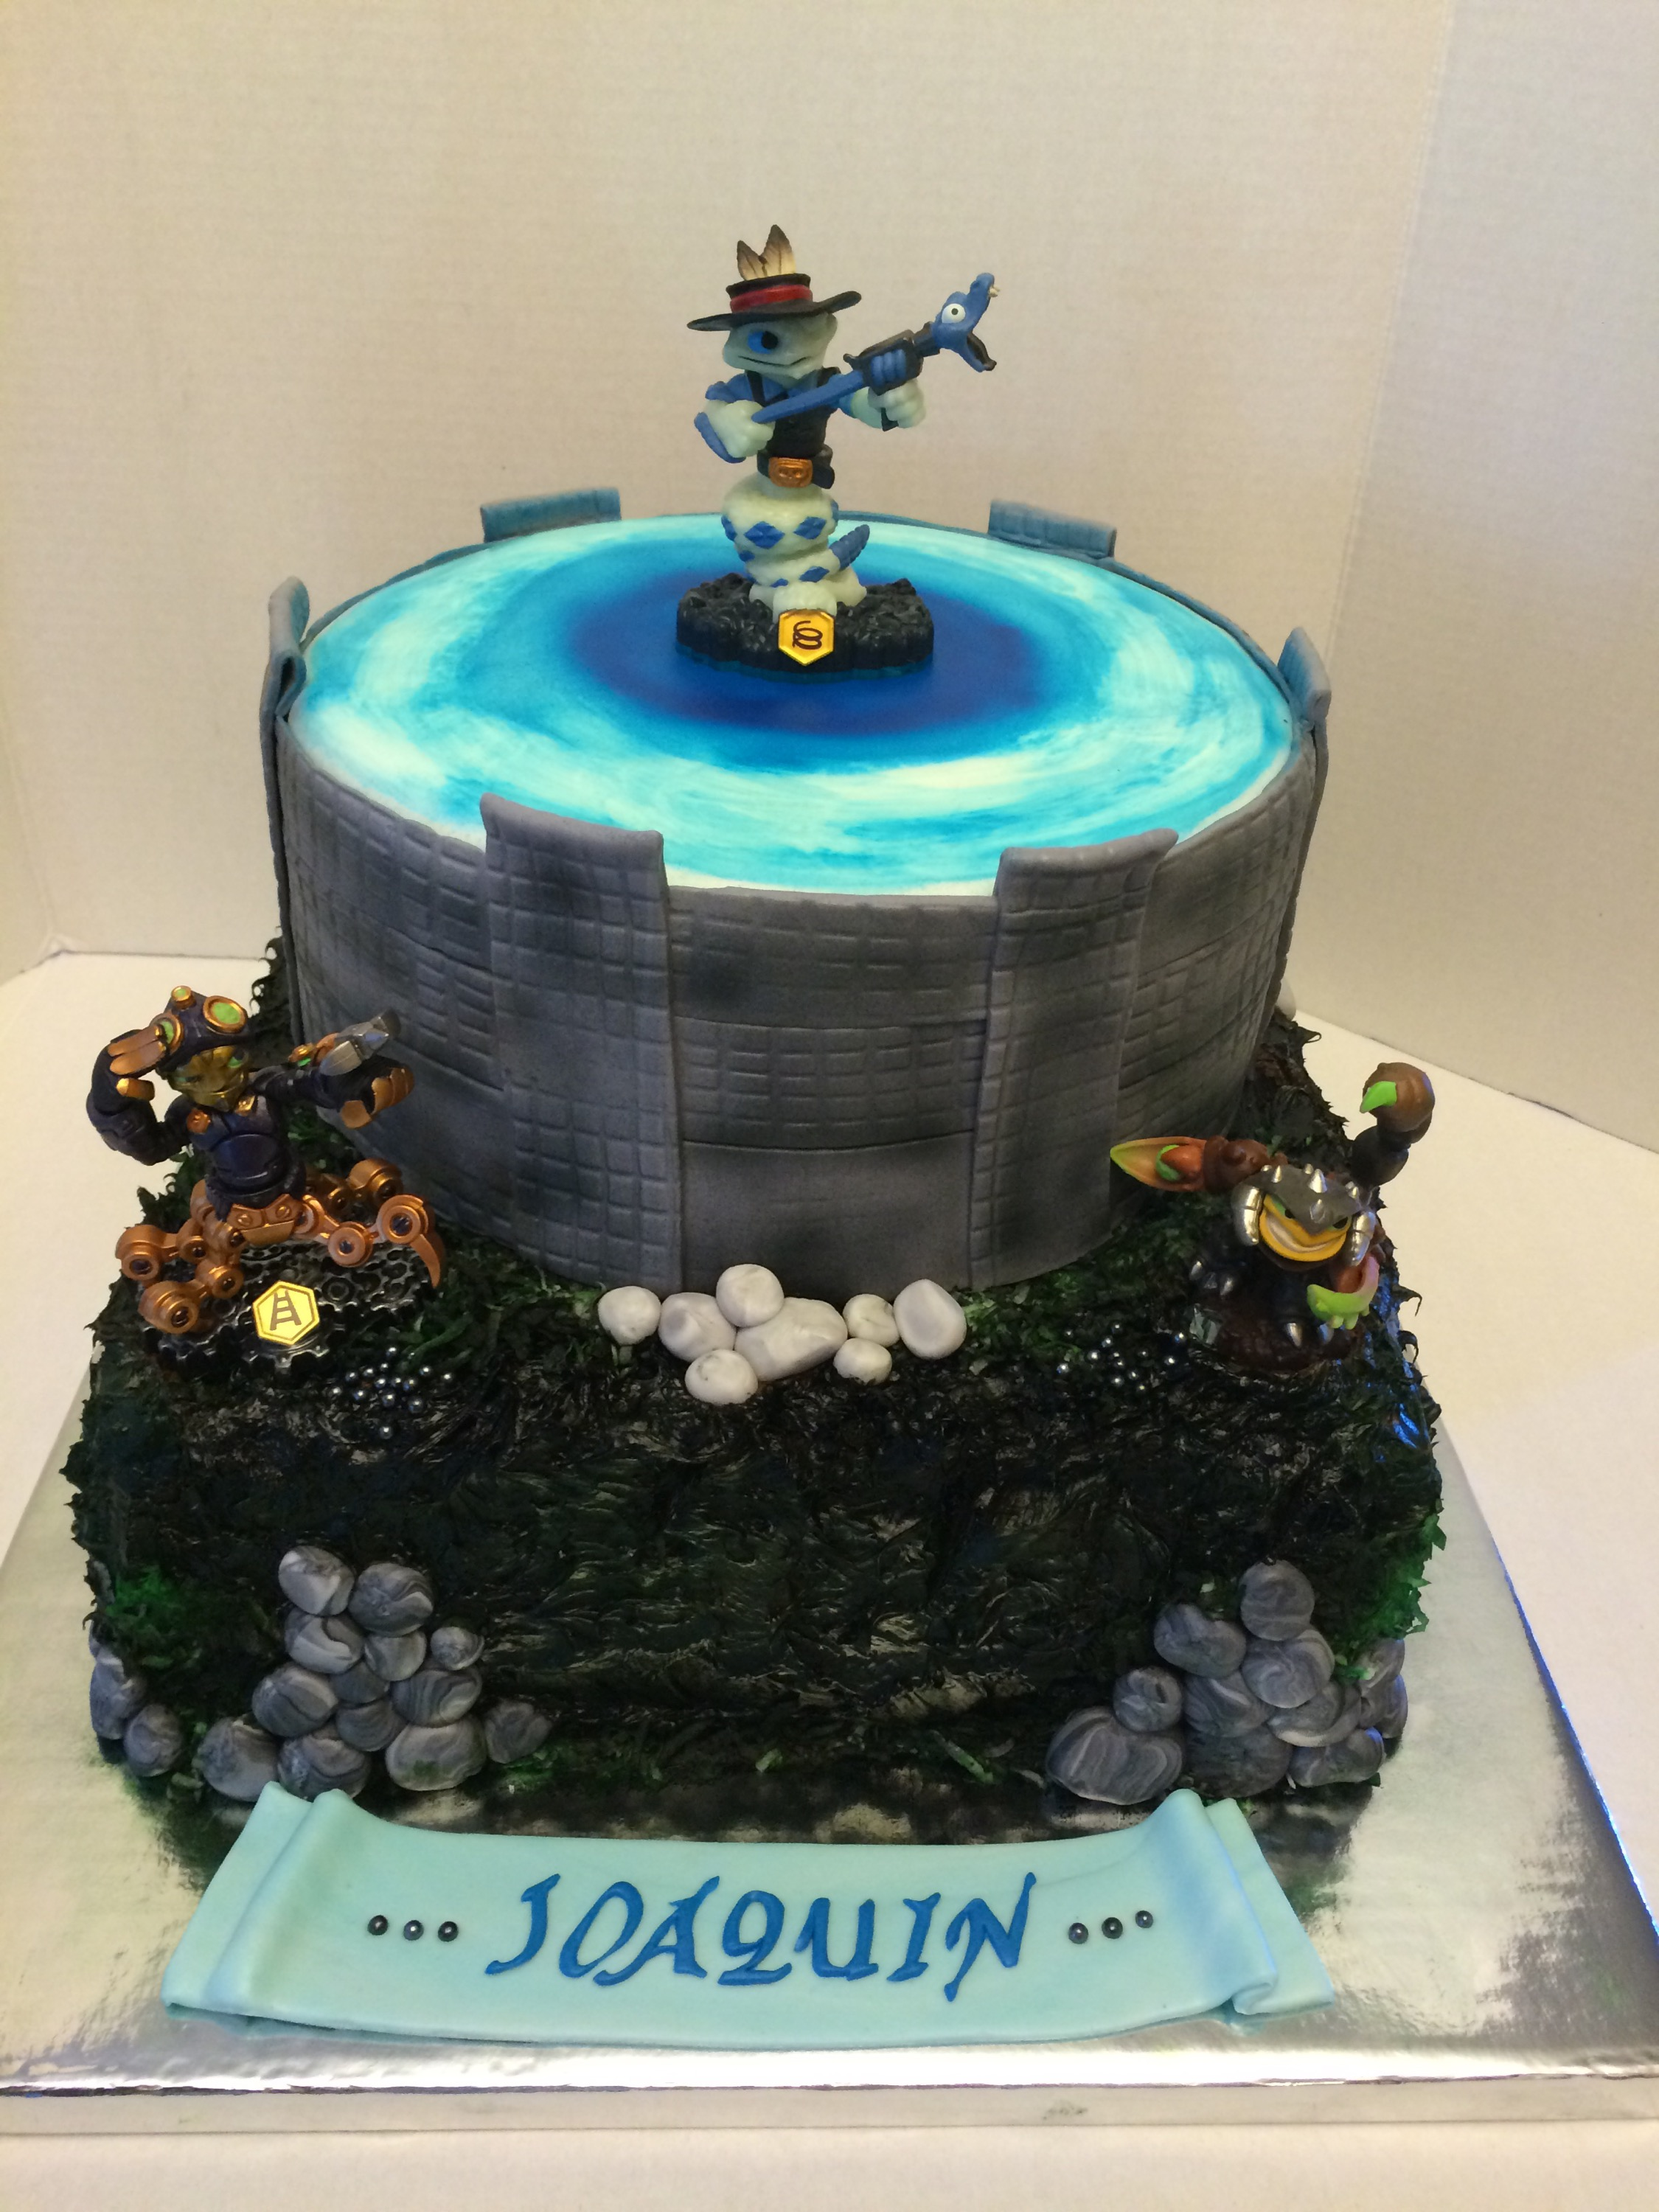 Remarkable Skylander Birthday Cakes Cakes By Cathy Chicago Funny Birthday Cards Online Inifofree Goldxyz